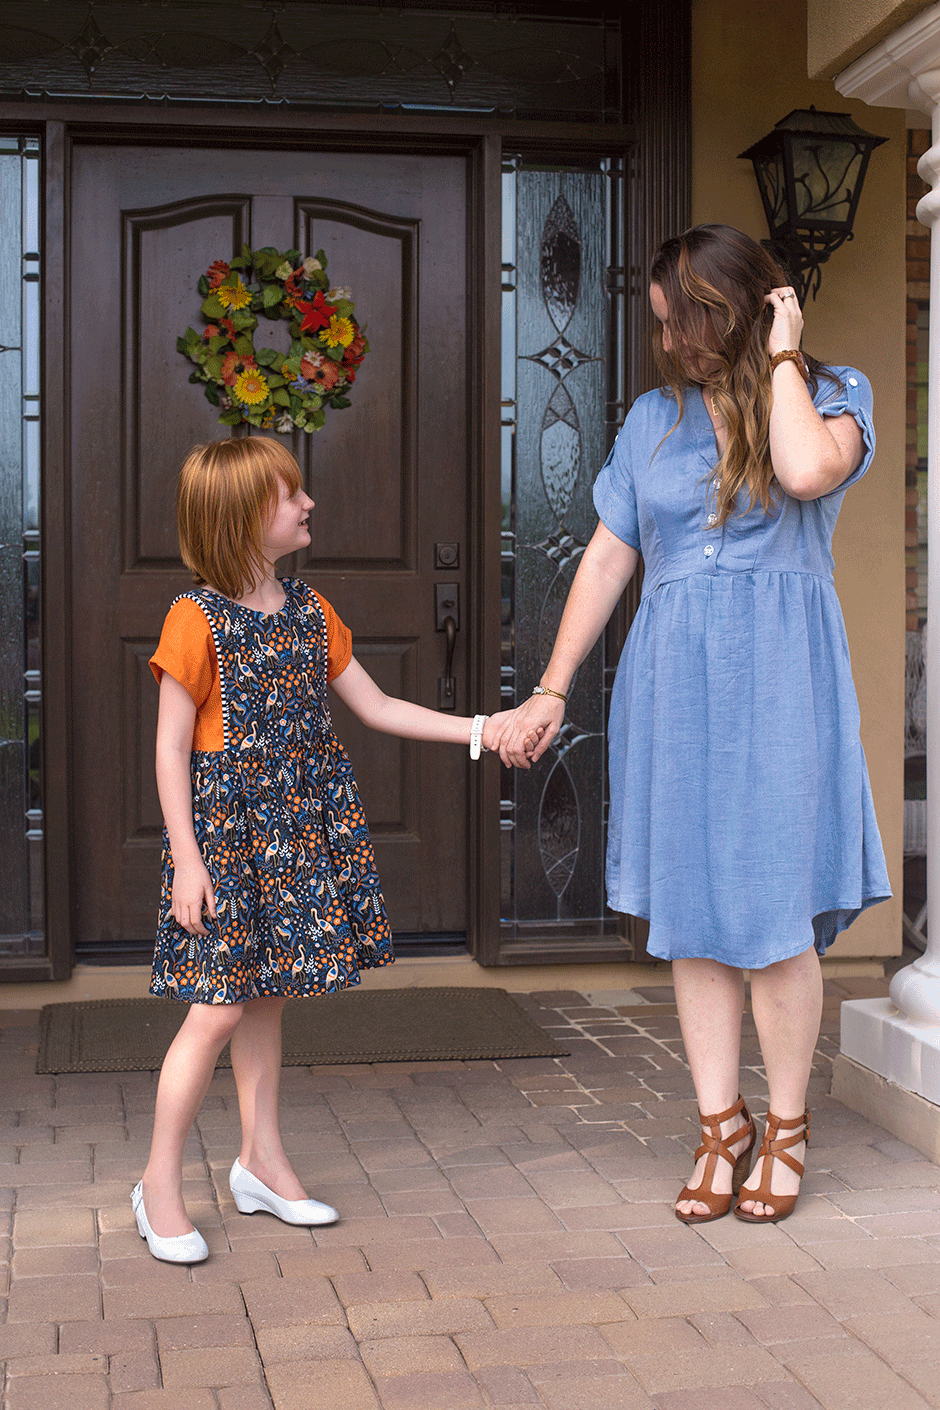 Whipping up a few warm weather dresses is the perfect welcome to a long overdue spring! These two dress patterns (one for girls and one for women) are surefire beginner favorites that will stand the test of time, and both are a breeze to sew. They both use woven fabrics which are easy to work with and widely available in super cute prints. Check out some inspiration below and get yourself started sewing spring dresses!